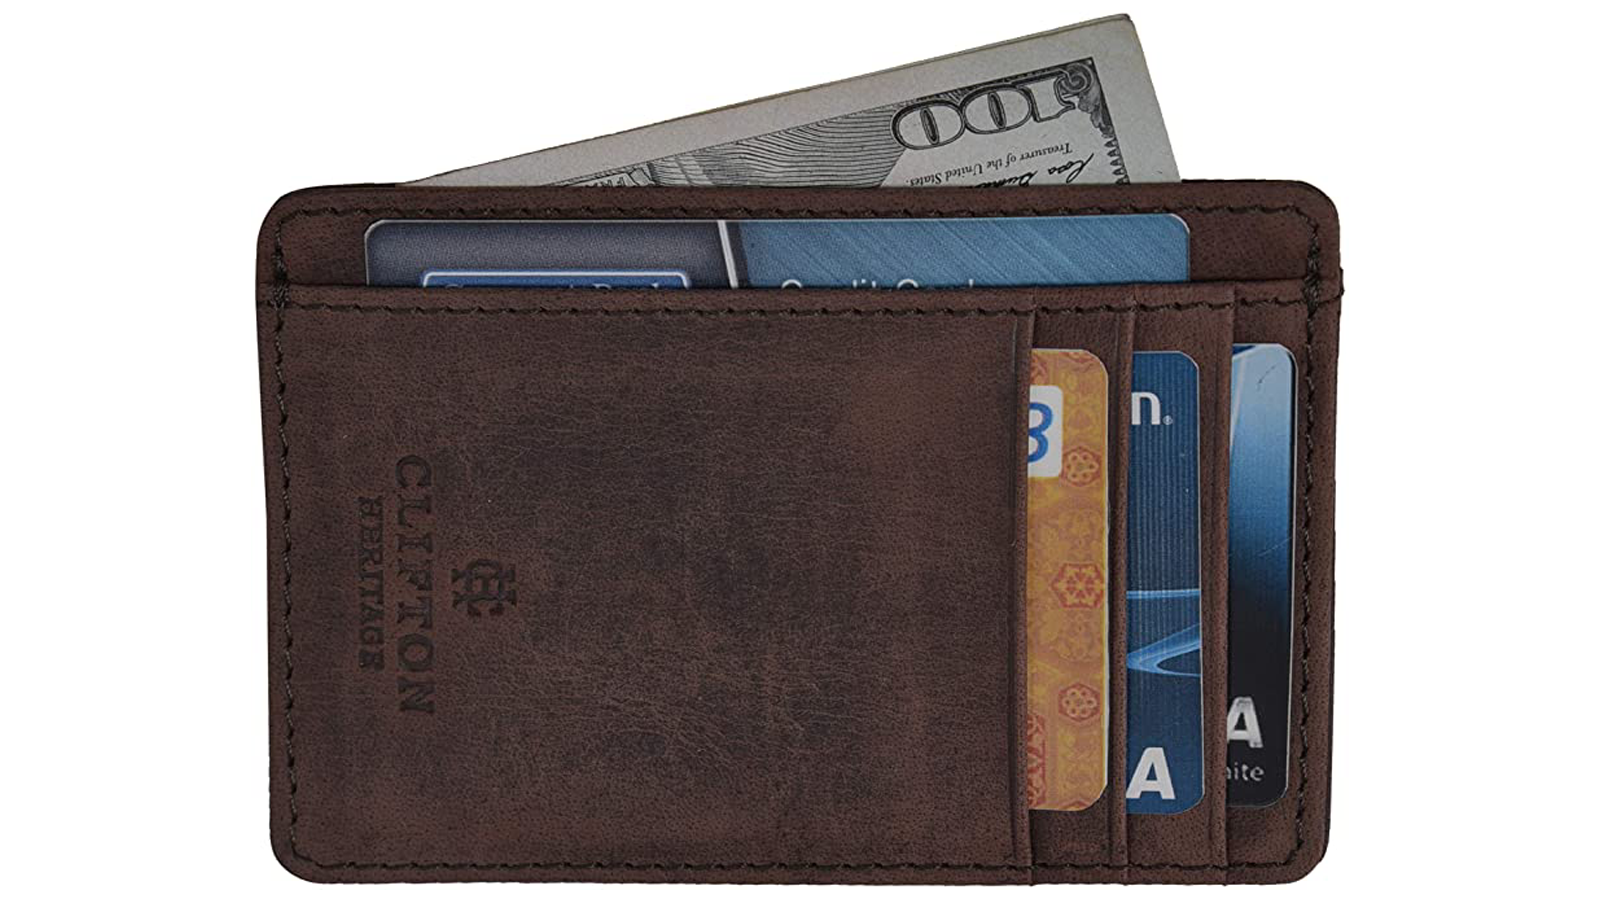 Upgrade Your Wallet to This Handsome Minimalist Leather Card Holder